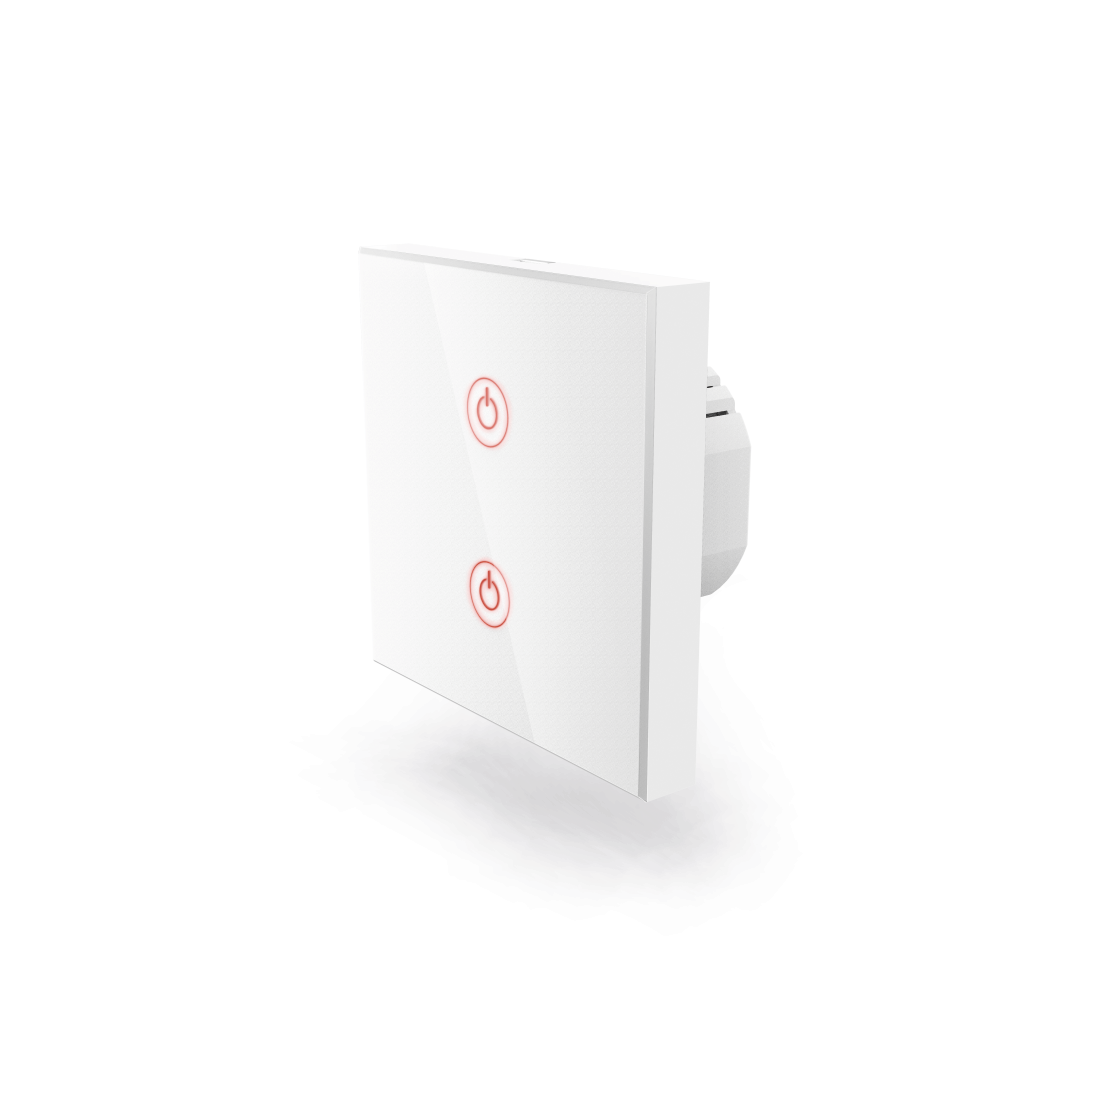 abx High-Res Image - Hama, WiFi Touch Wall Switch, Flush-mounted, white